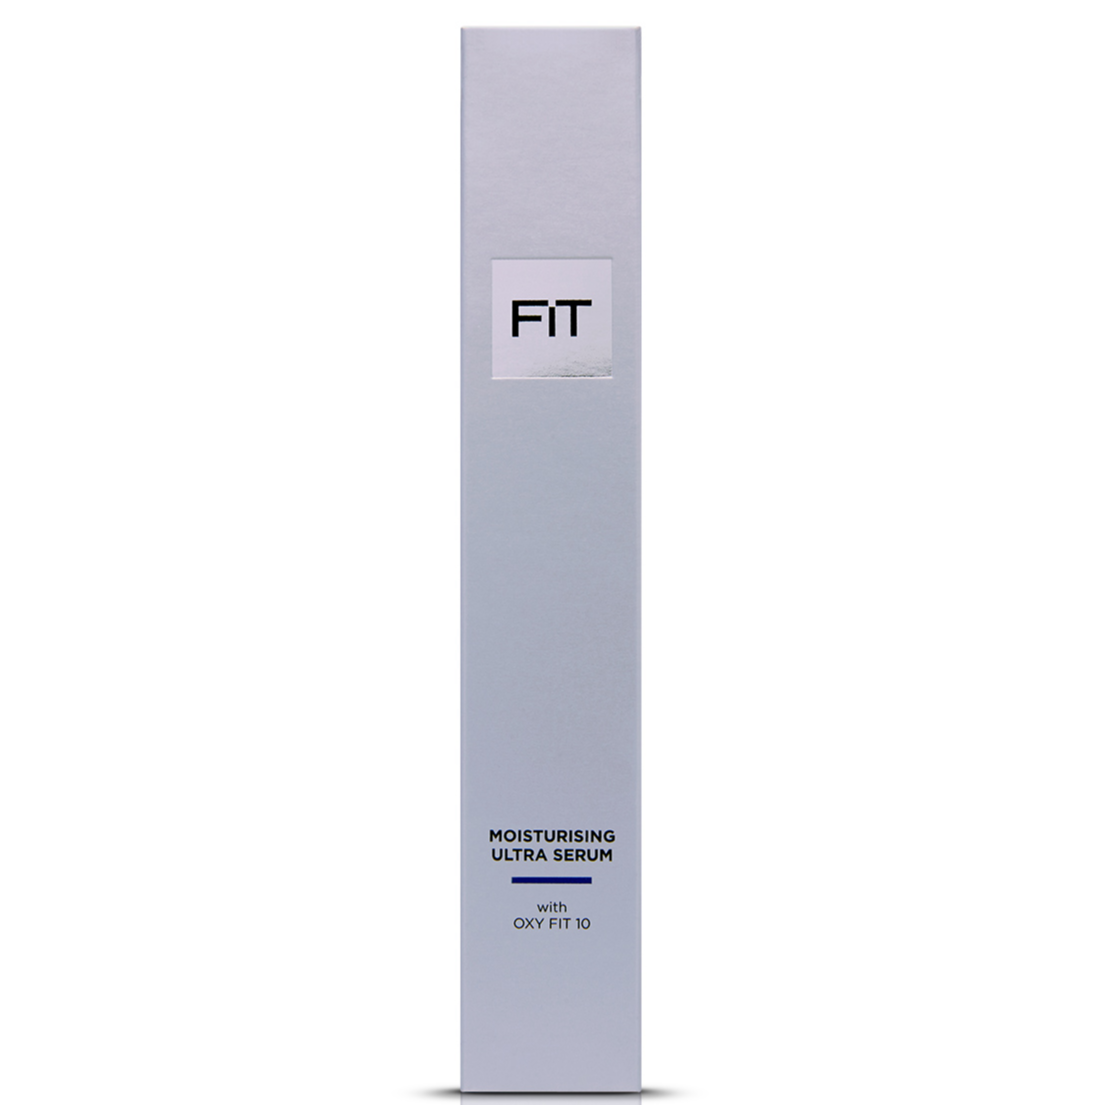 Serum Dưỡng Ẩm Fit Moisturising Ultra Serum - 30ml